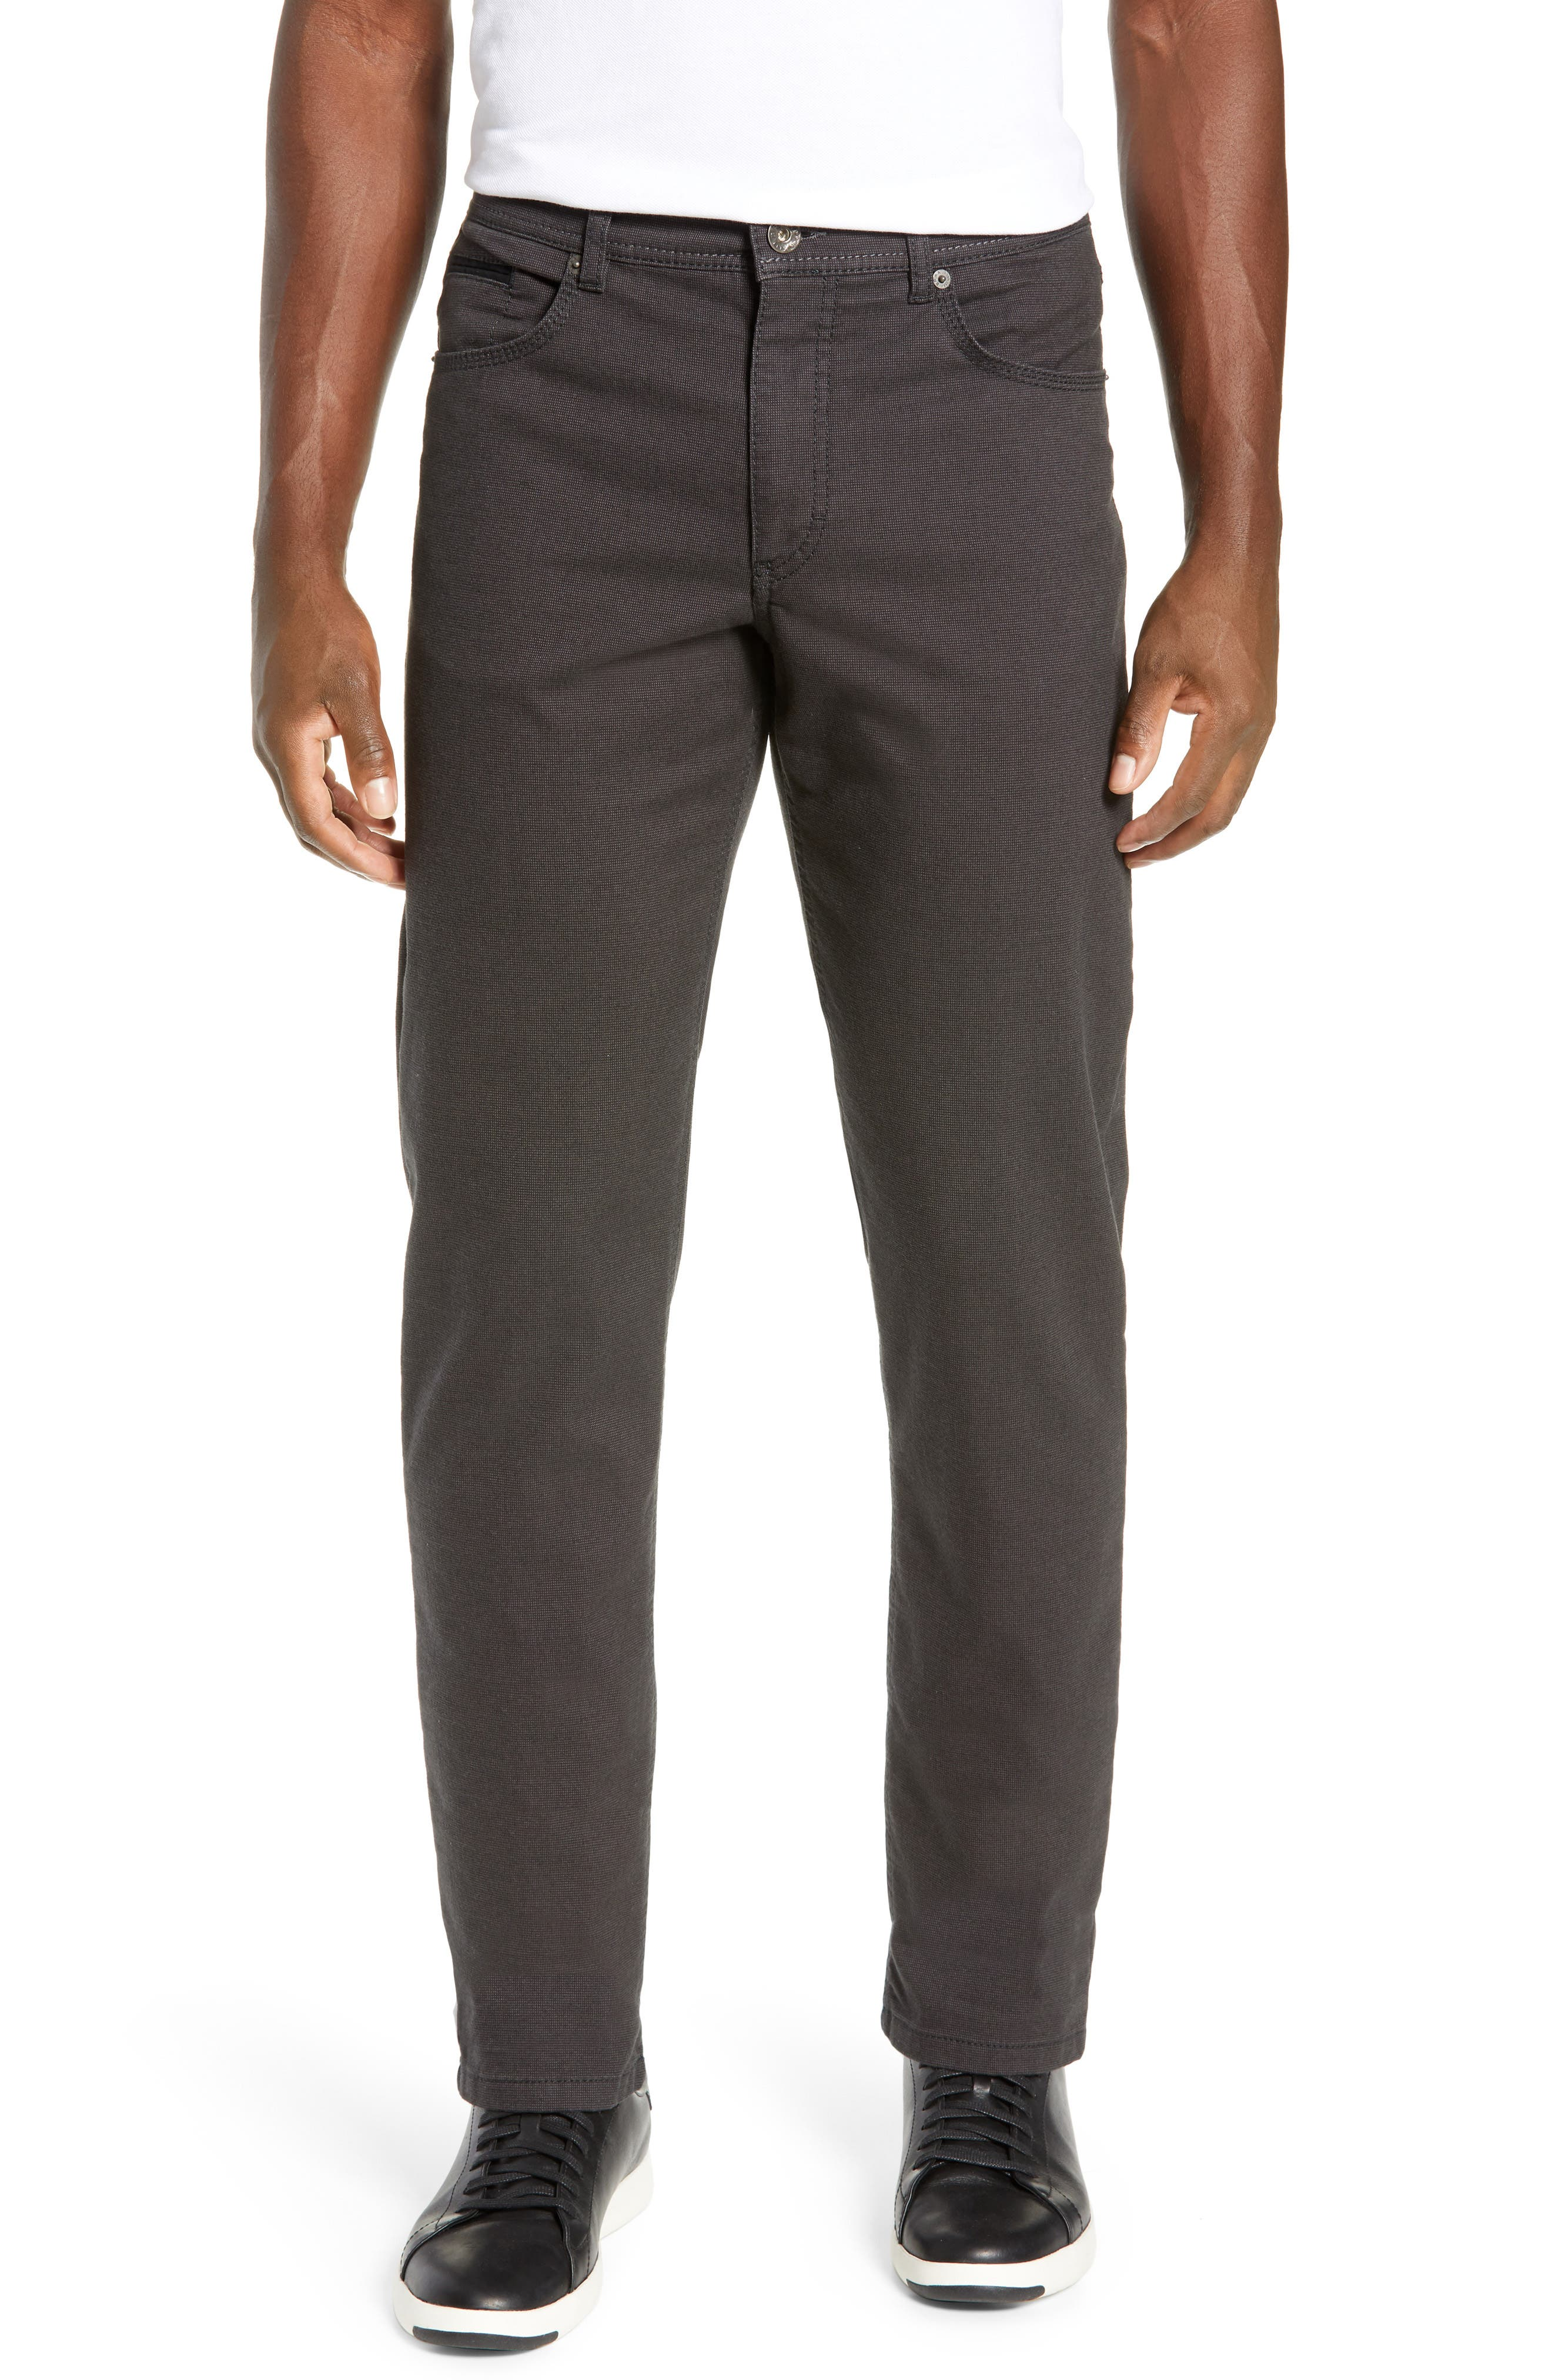 BRAX, Woolook Classic Fit Flat Front Pants, Main thumbnail 1, color, ANTHRA